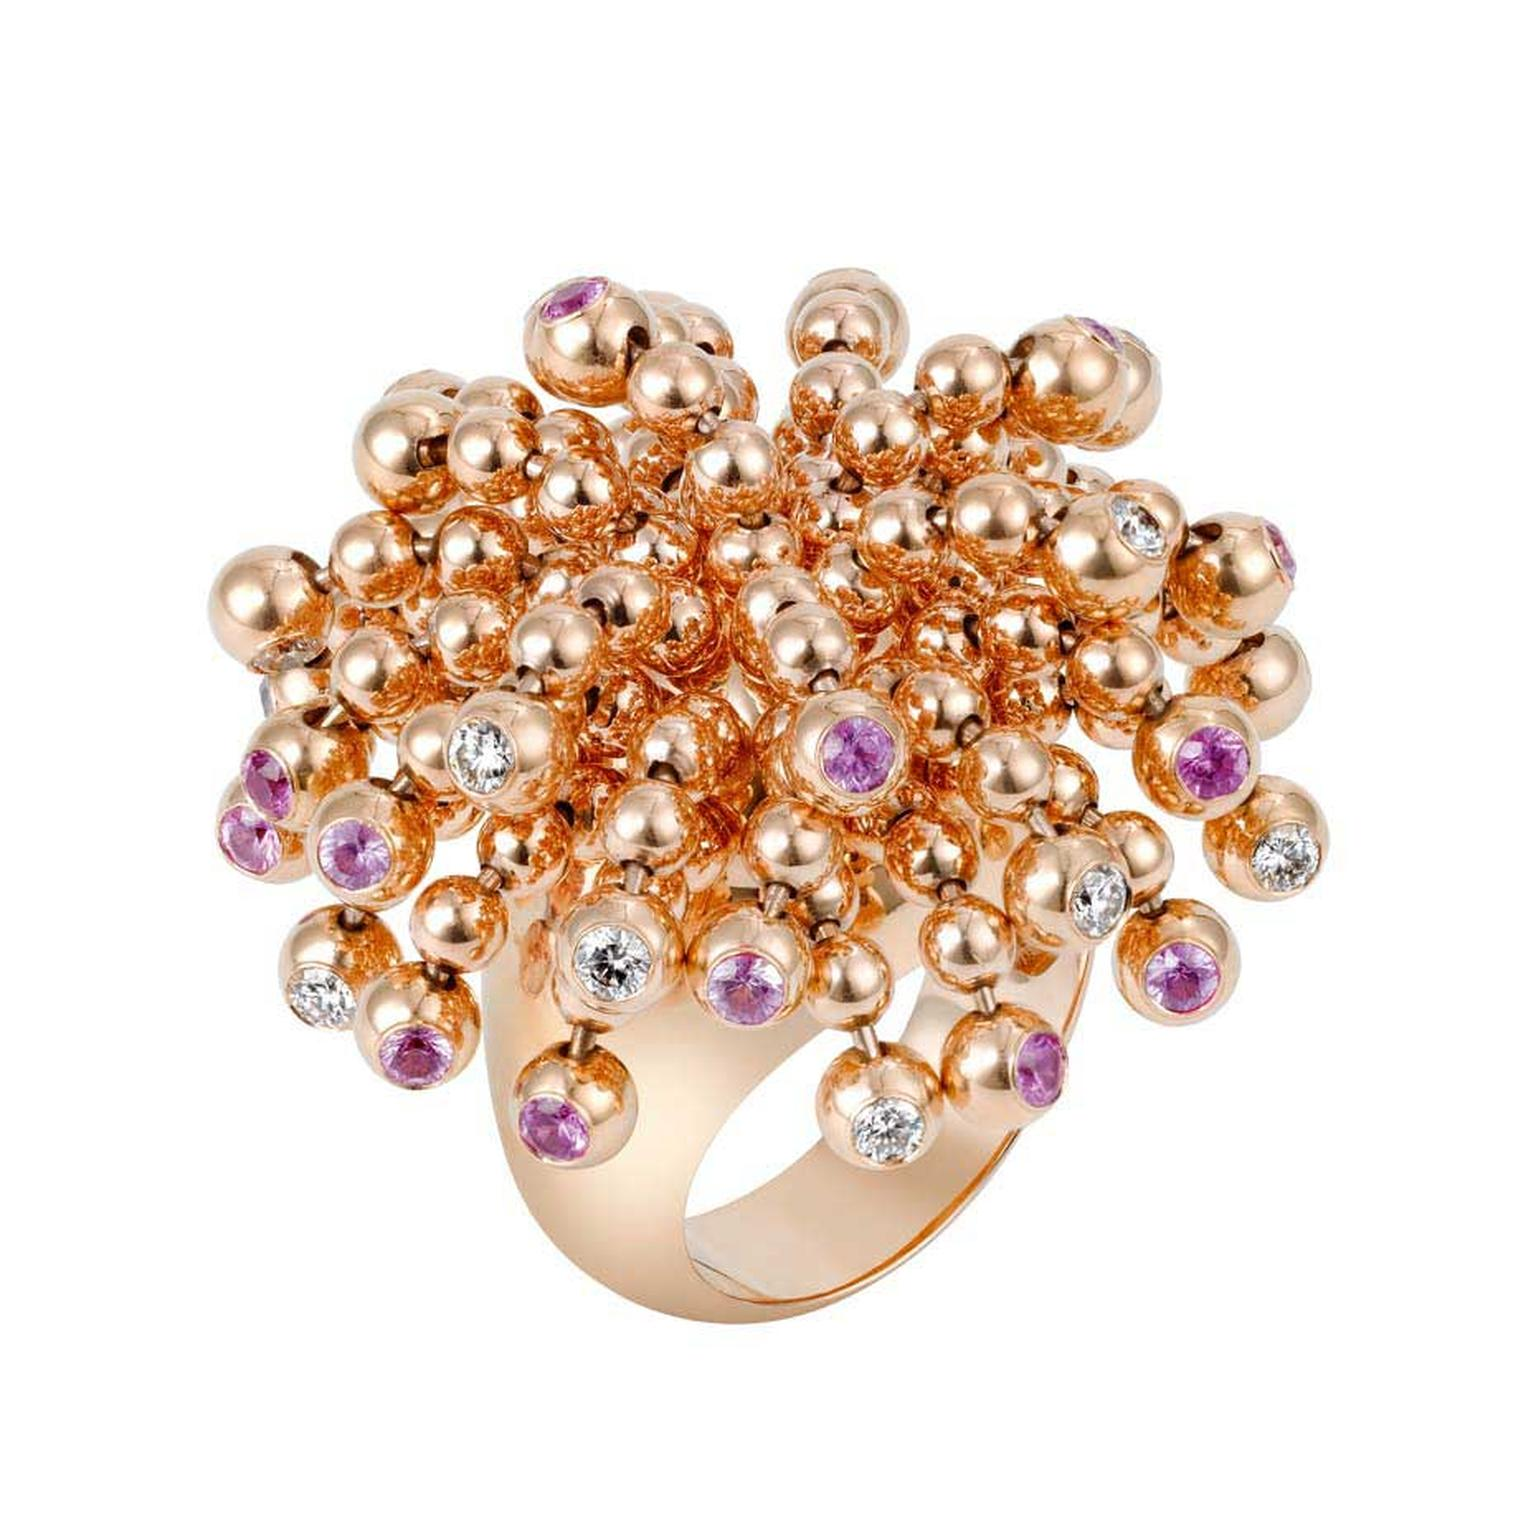 Cartier Paris Nouvelle Vague Sparkling pink gold ring with diamonds and pink sapphires